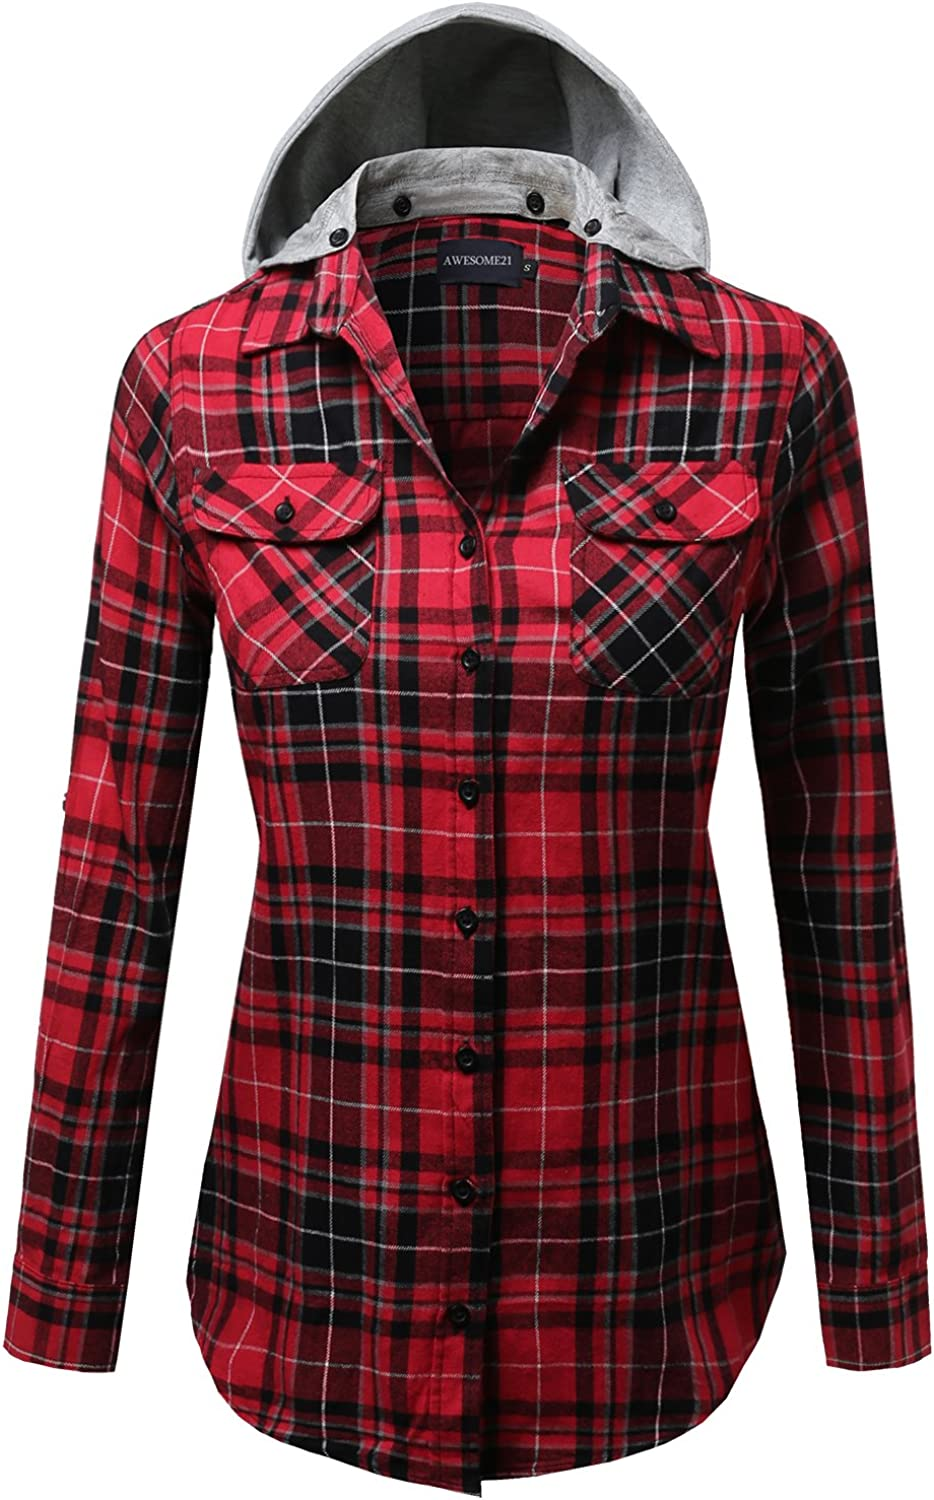 Awesome21 Womens Casual Hooded Flannel Plaid Shirt Clothing, Shoes ...